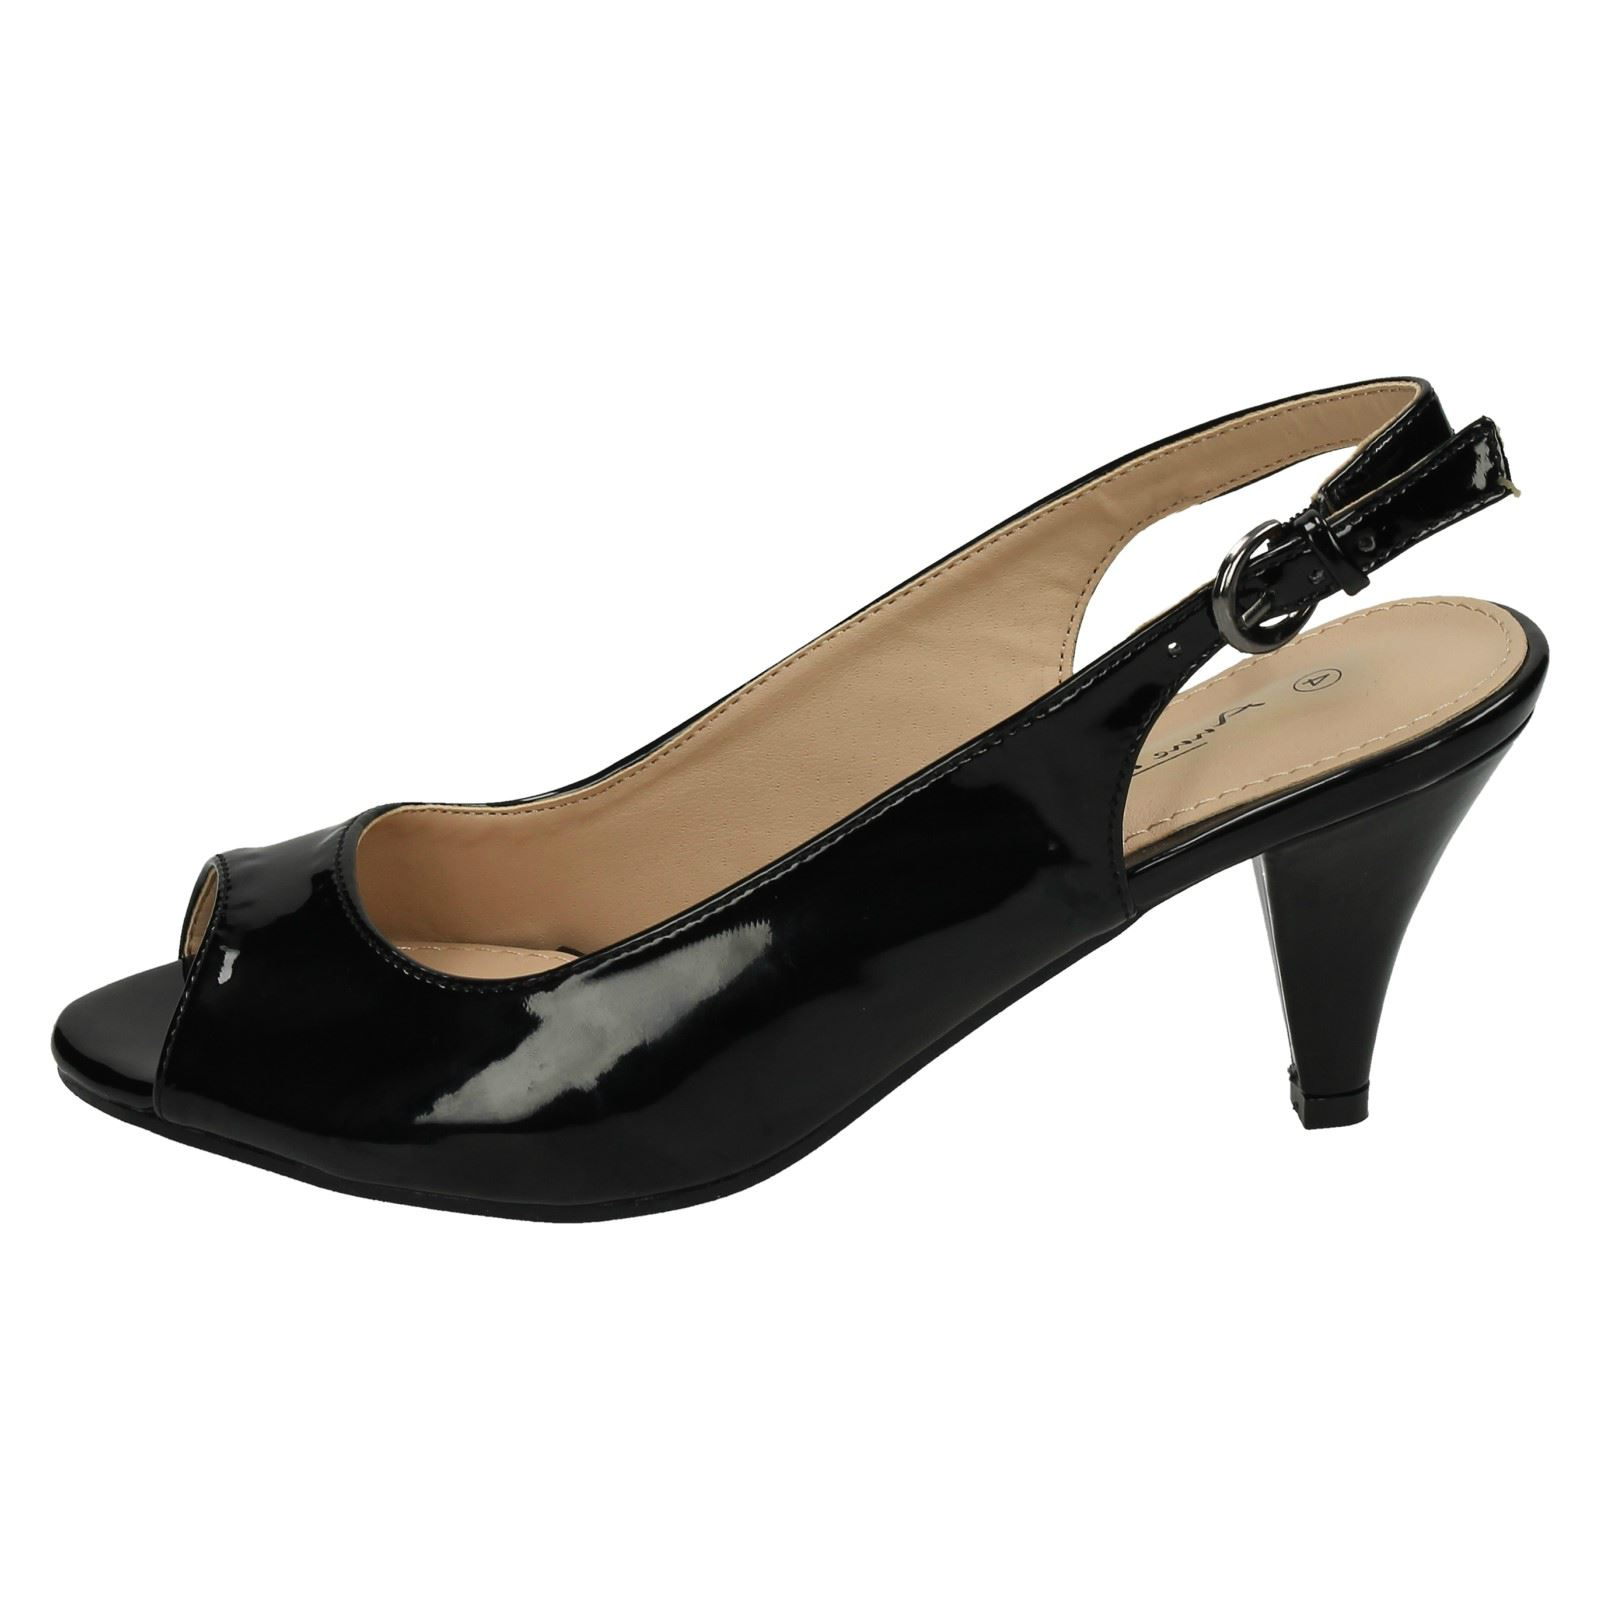 Ladies F10592 5710 Peep Toe Sling Back Court Shoe By Anne Michelle £16.99